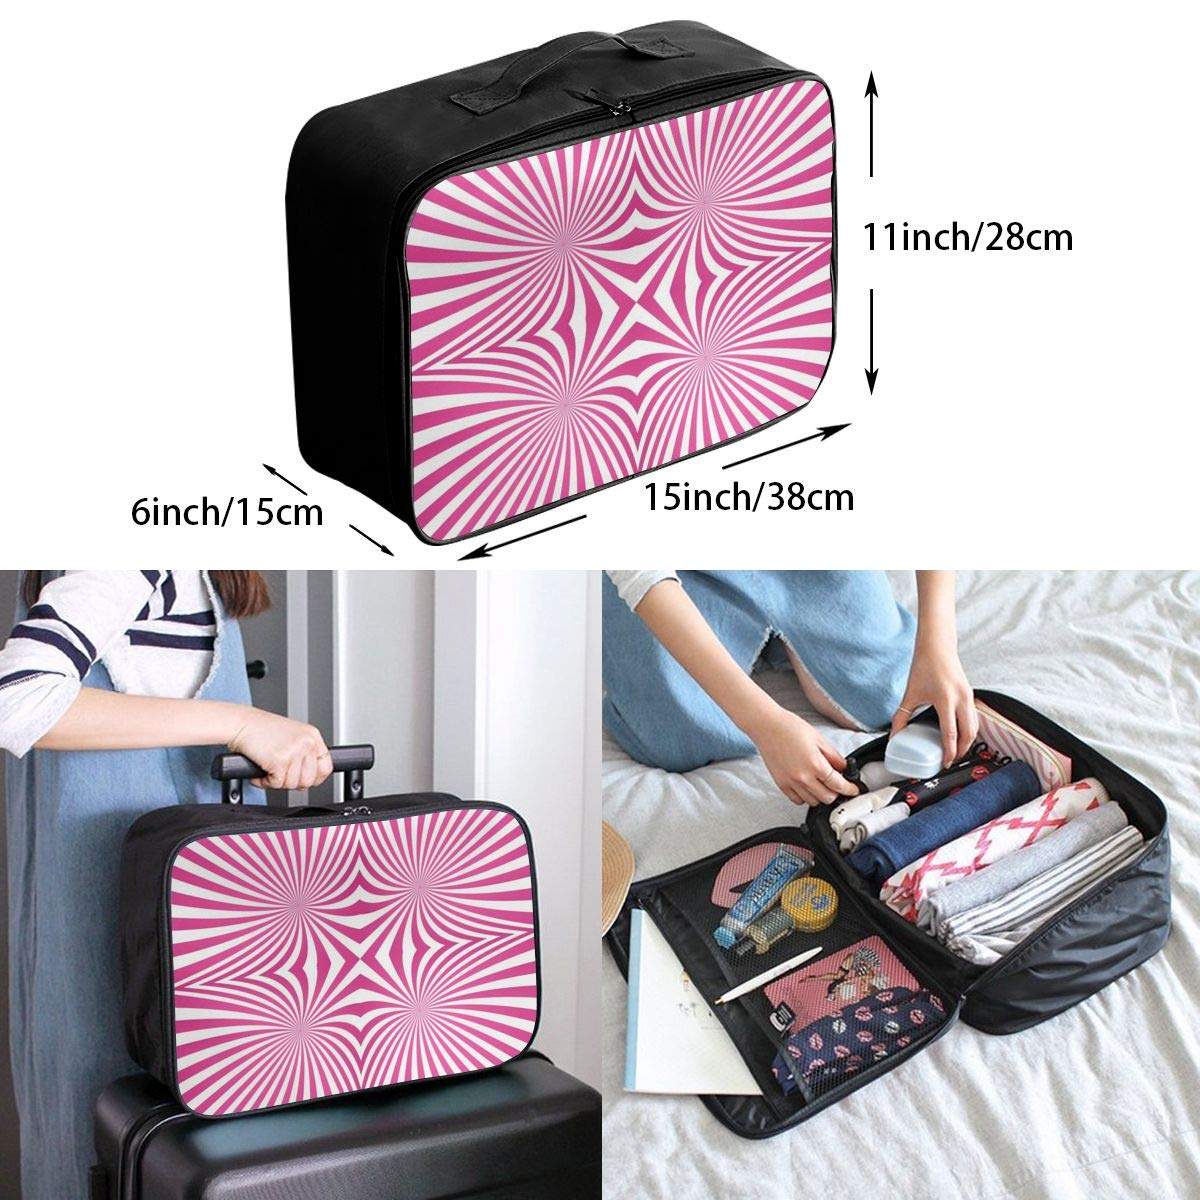 Abstract Rays Stripes Pink Travel Lightweight Waterproof Foldable Storage Carry Luggage Large Capacity Portable Luggage Bag Duffel Bag